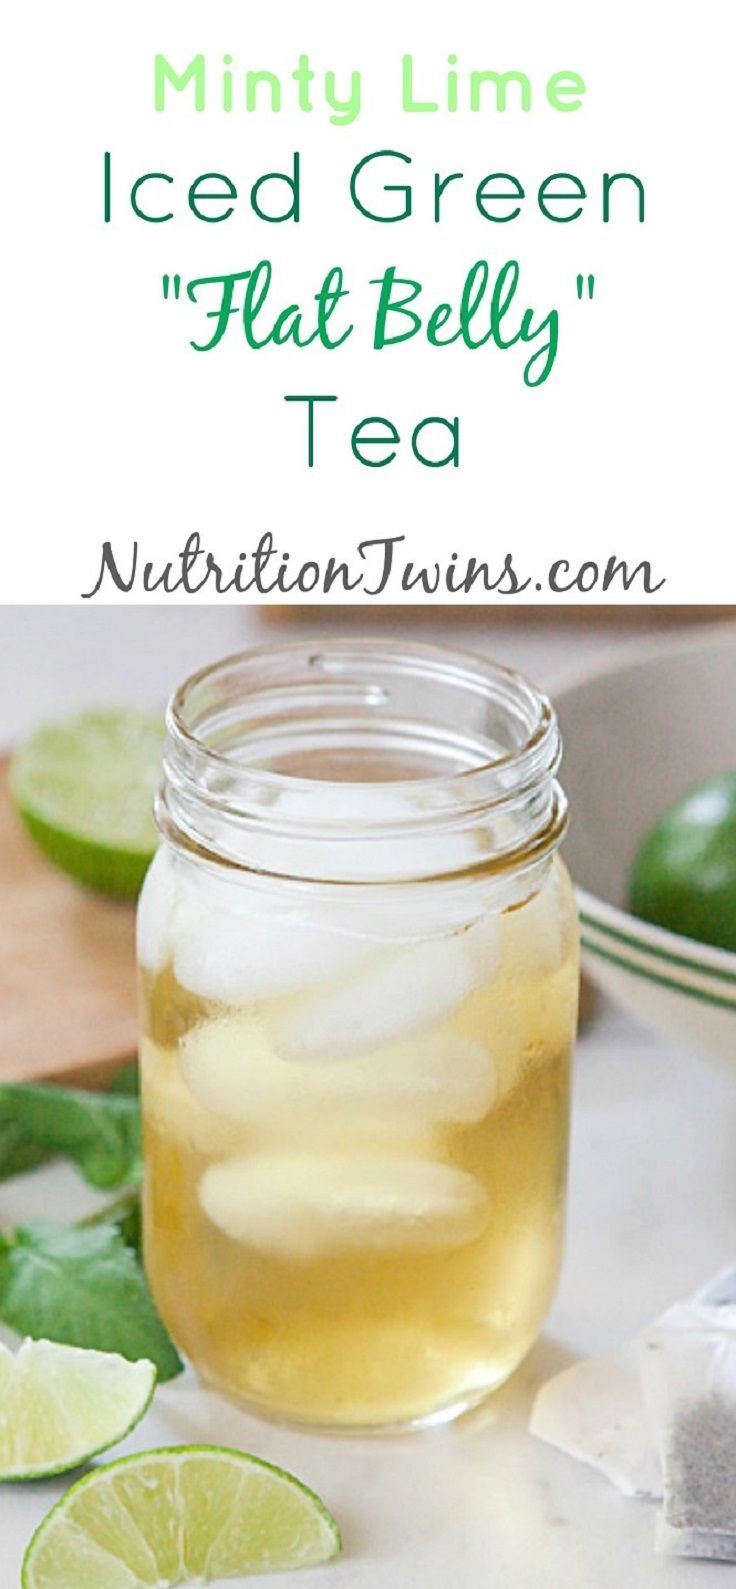 Minty Lime Iced Green Flat Belly Tea - 8 Essential Tips, Exercises and Recipes for Getting a Flat Belly